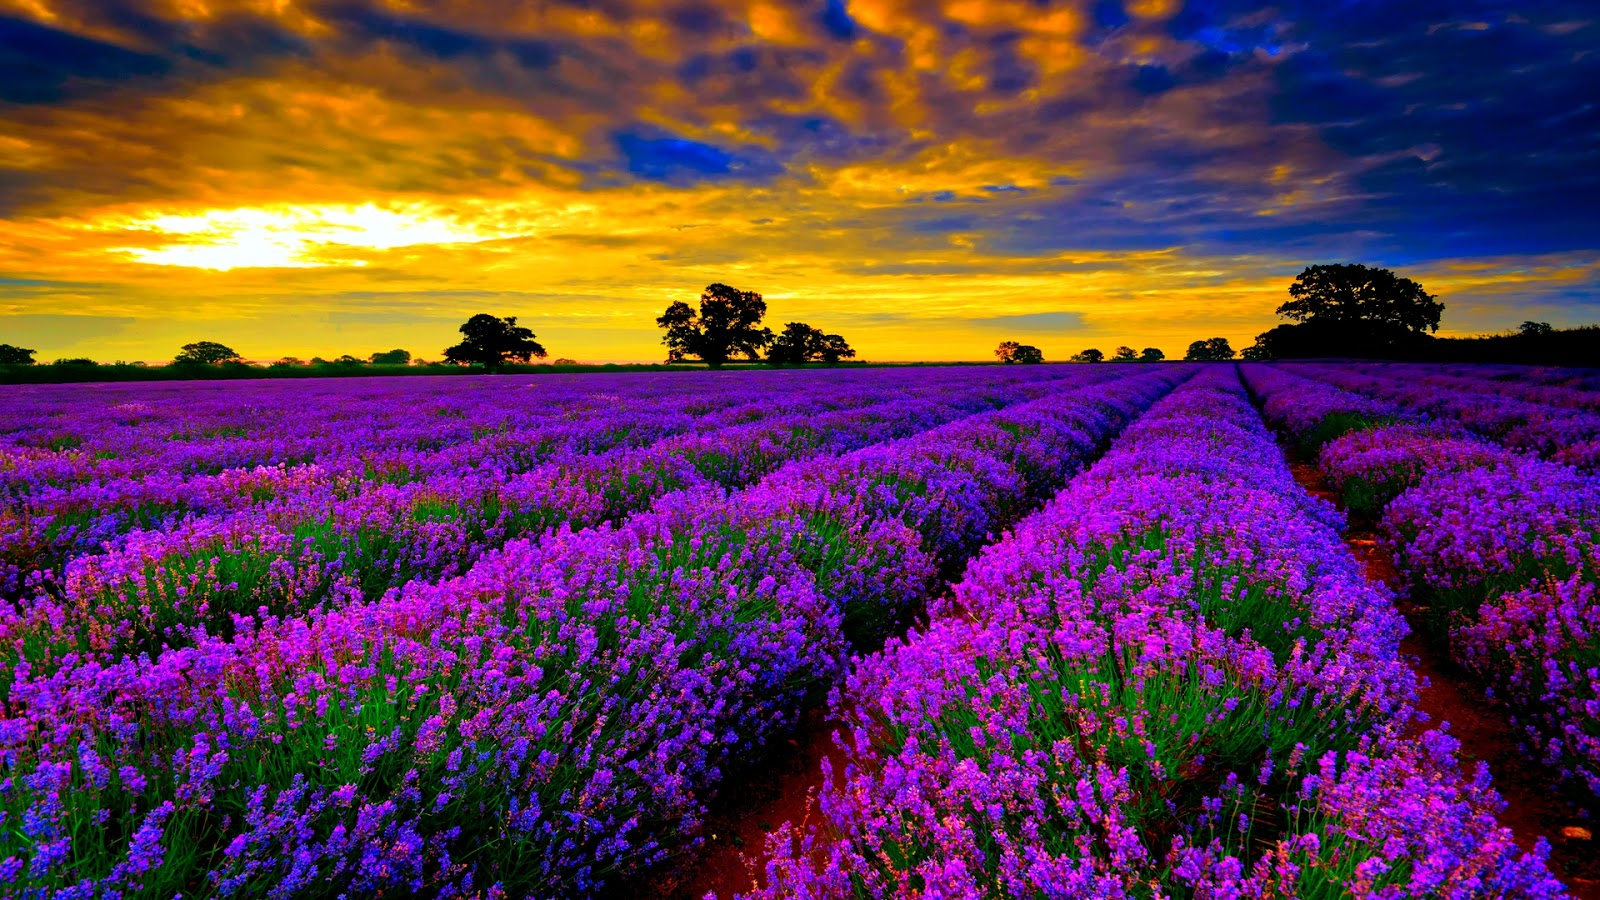 Lavender winter flowers melbourne florist have you got time to take tour around any lavender farm in melbourne sure youll lose your thought into it and thats great izmirmasajfo